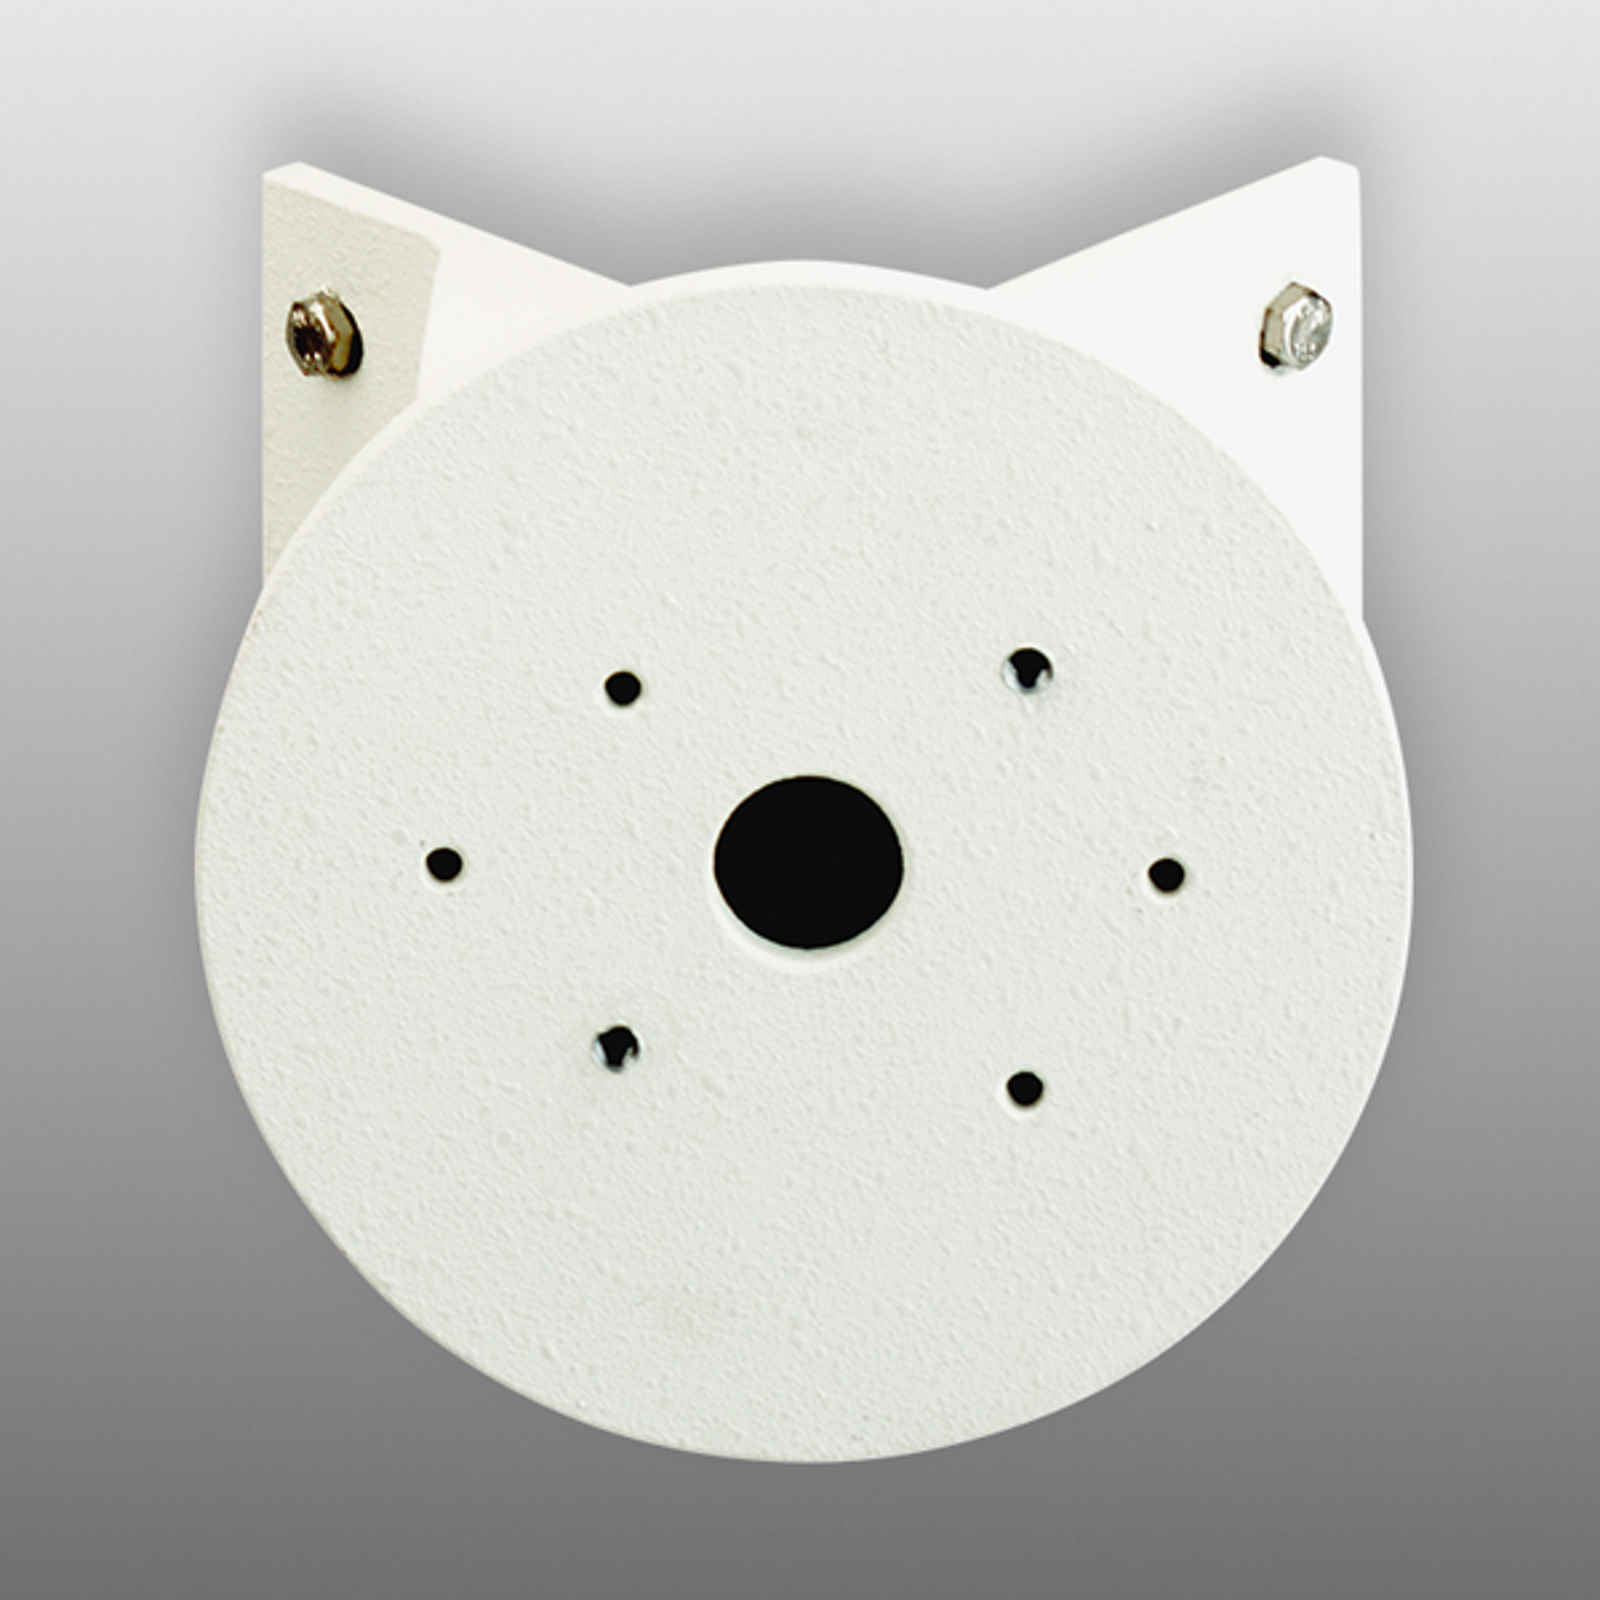 Round corner block for outdoor wall lights, white_4001898_1